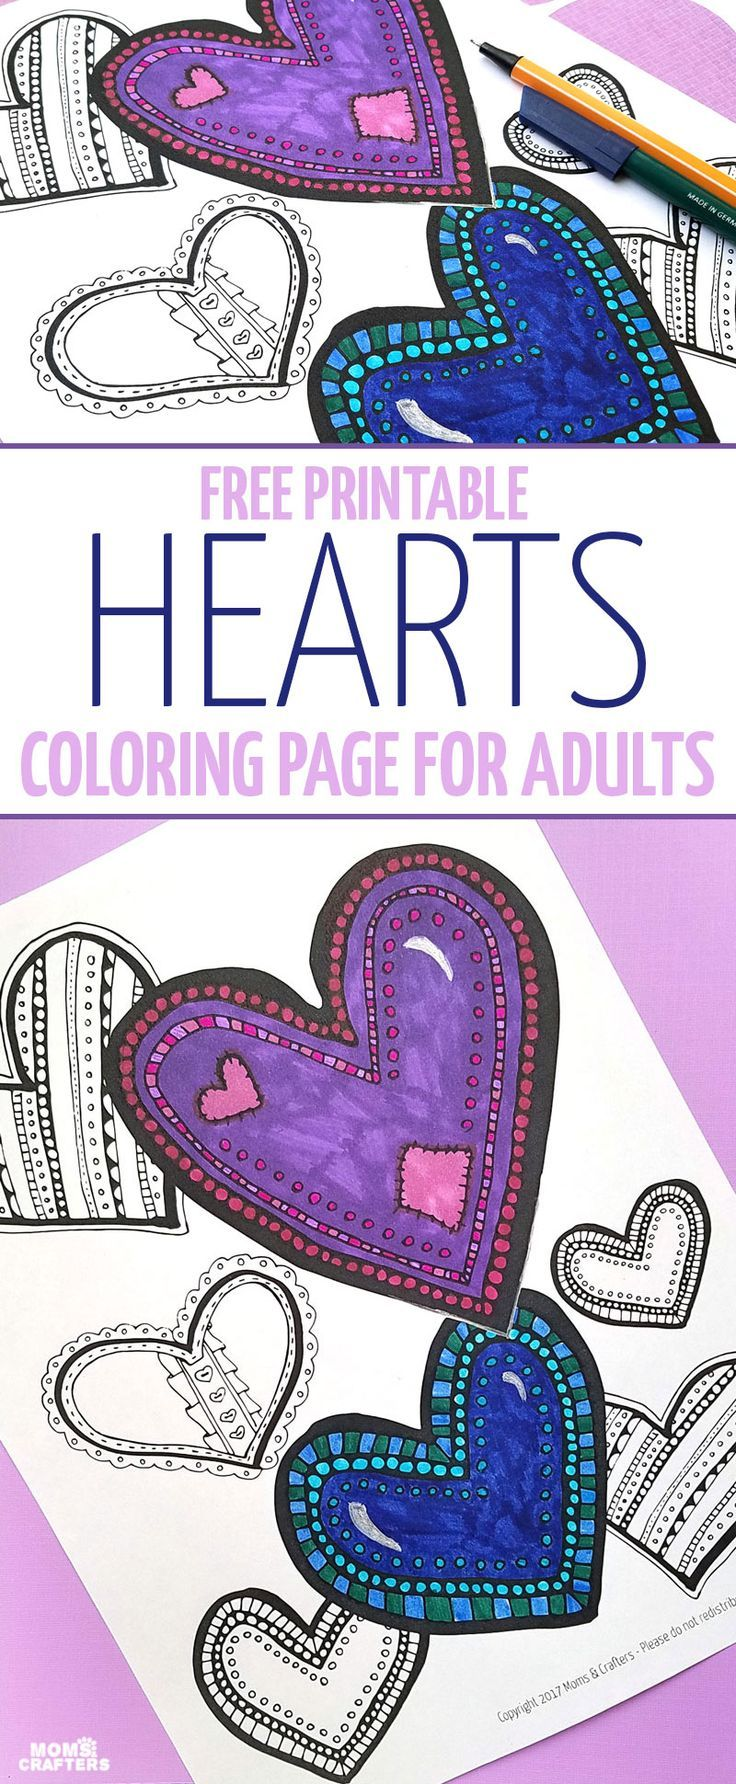 497 best images about Free Colouring Pages on Pinterest